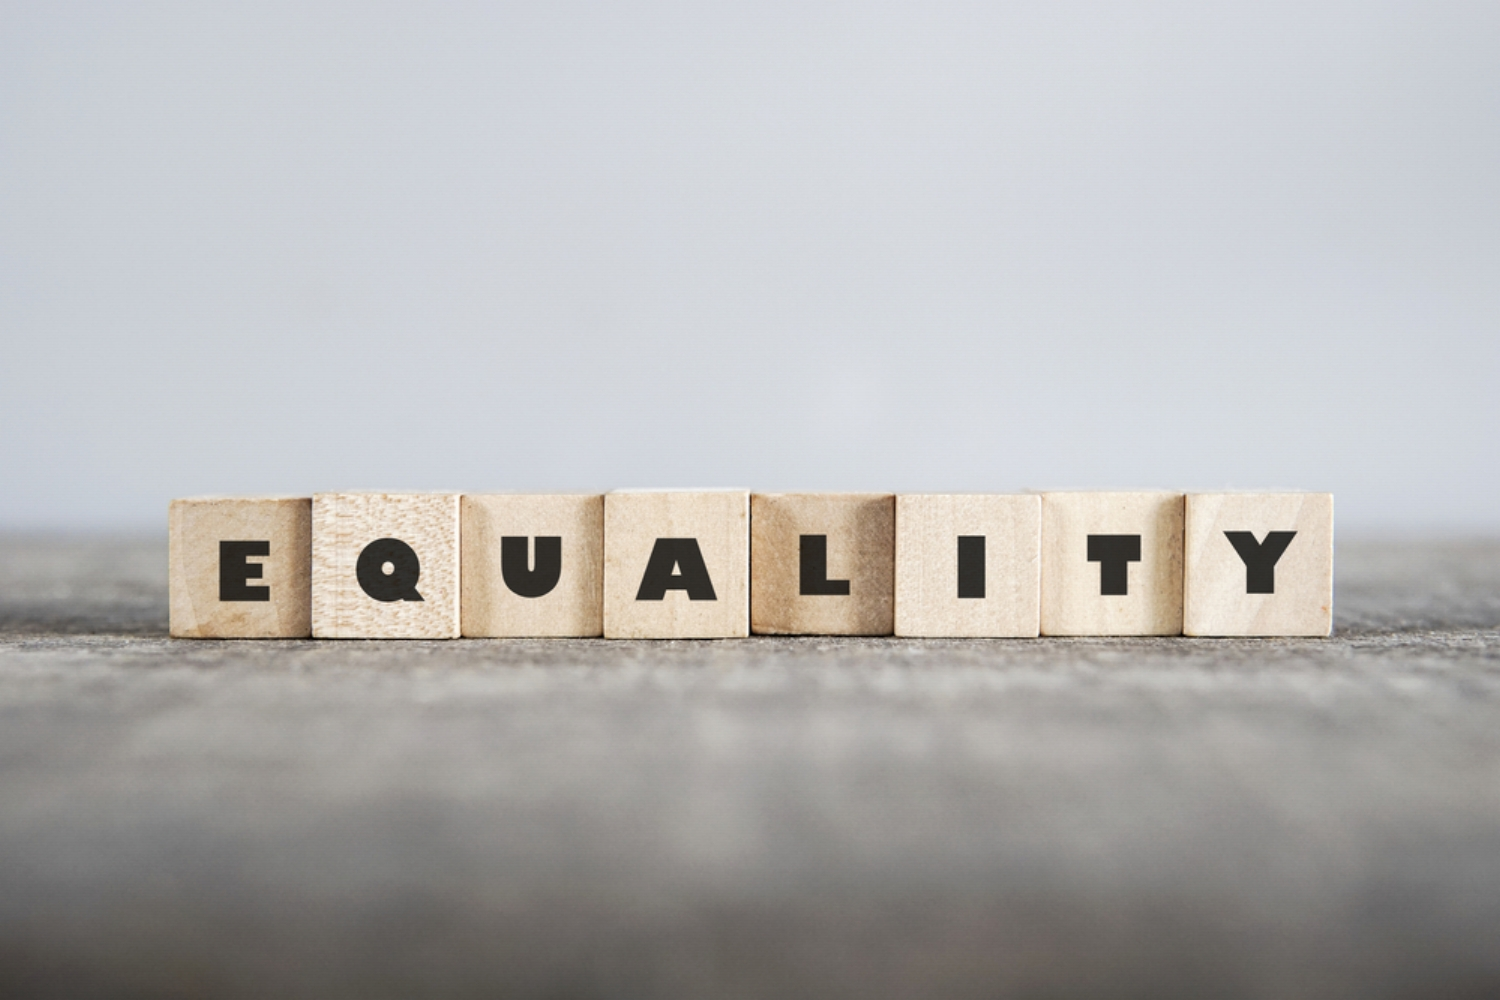 Legal Services, Equality for All, Women's Rights, Gay Rights, LGBTQA+, Rights for Minorities